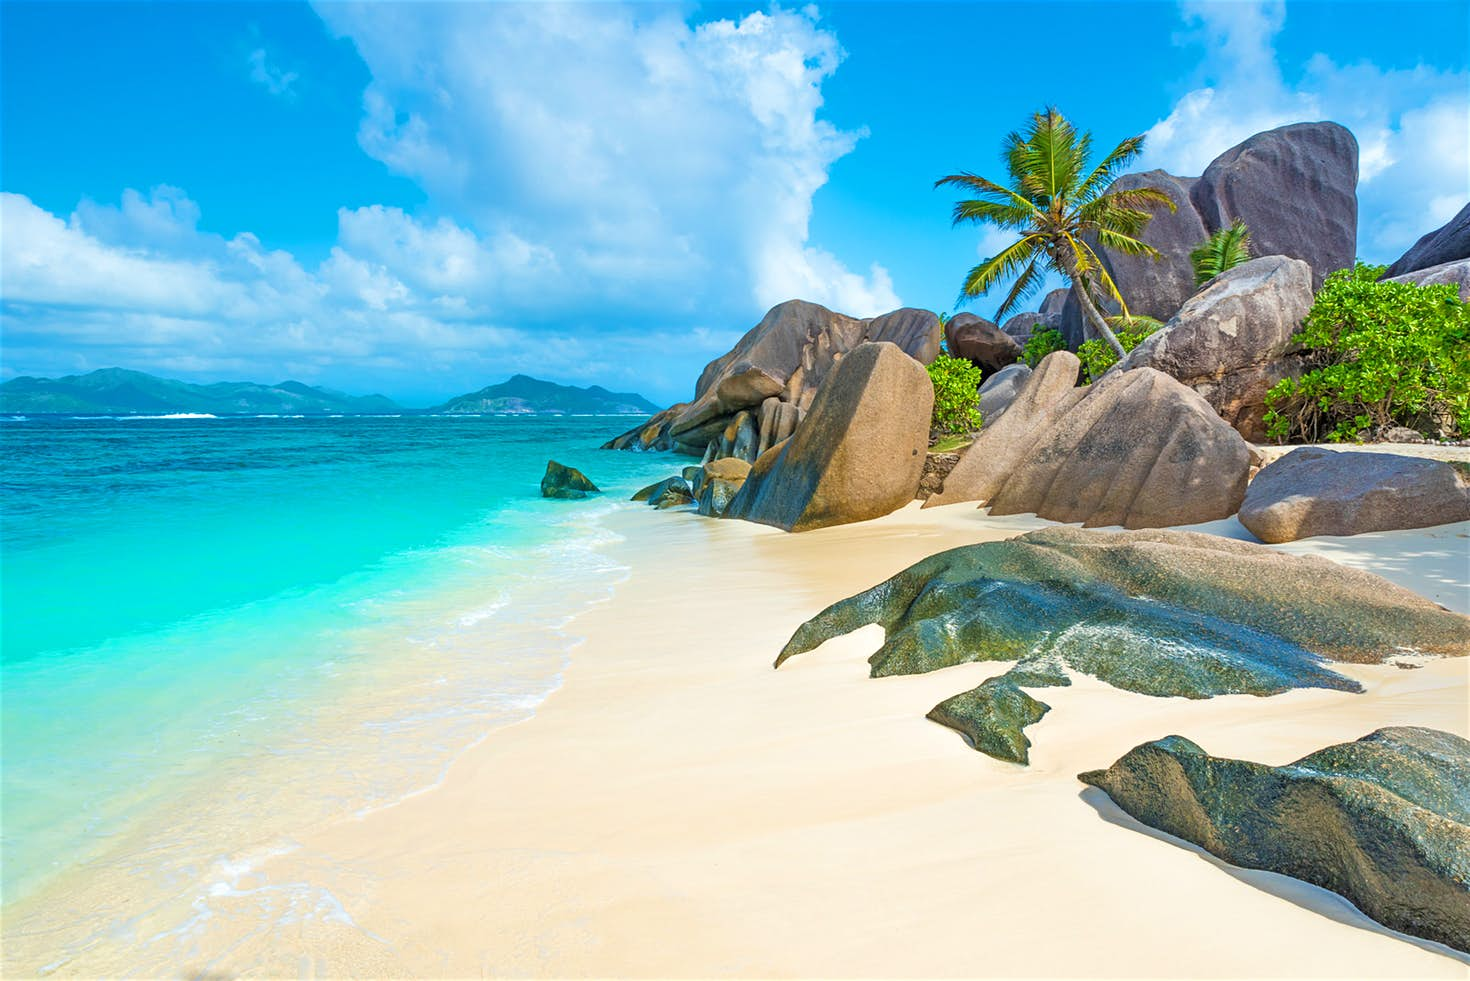 Granitic beach of the seychelles